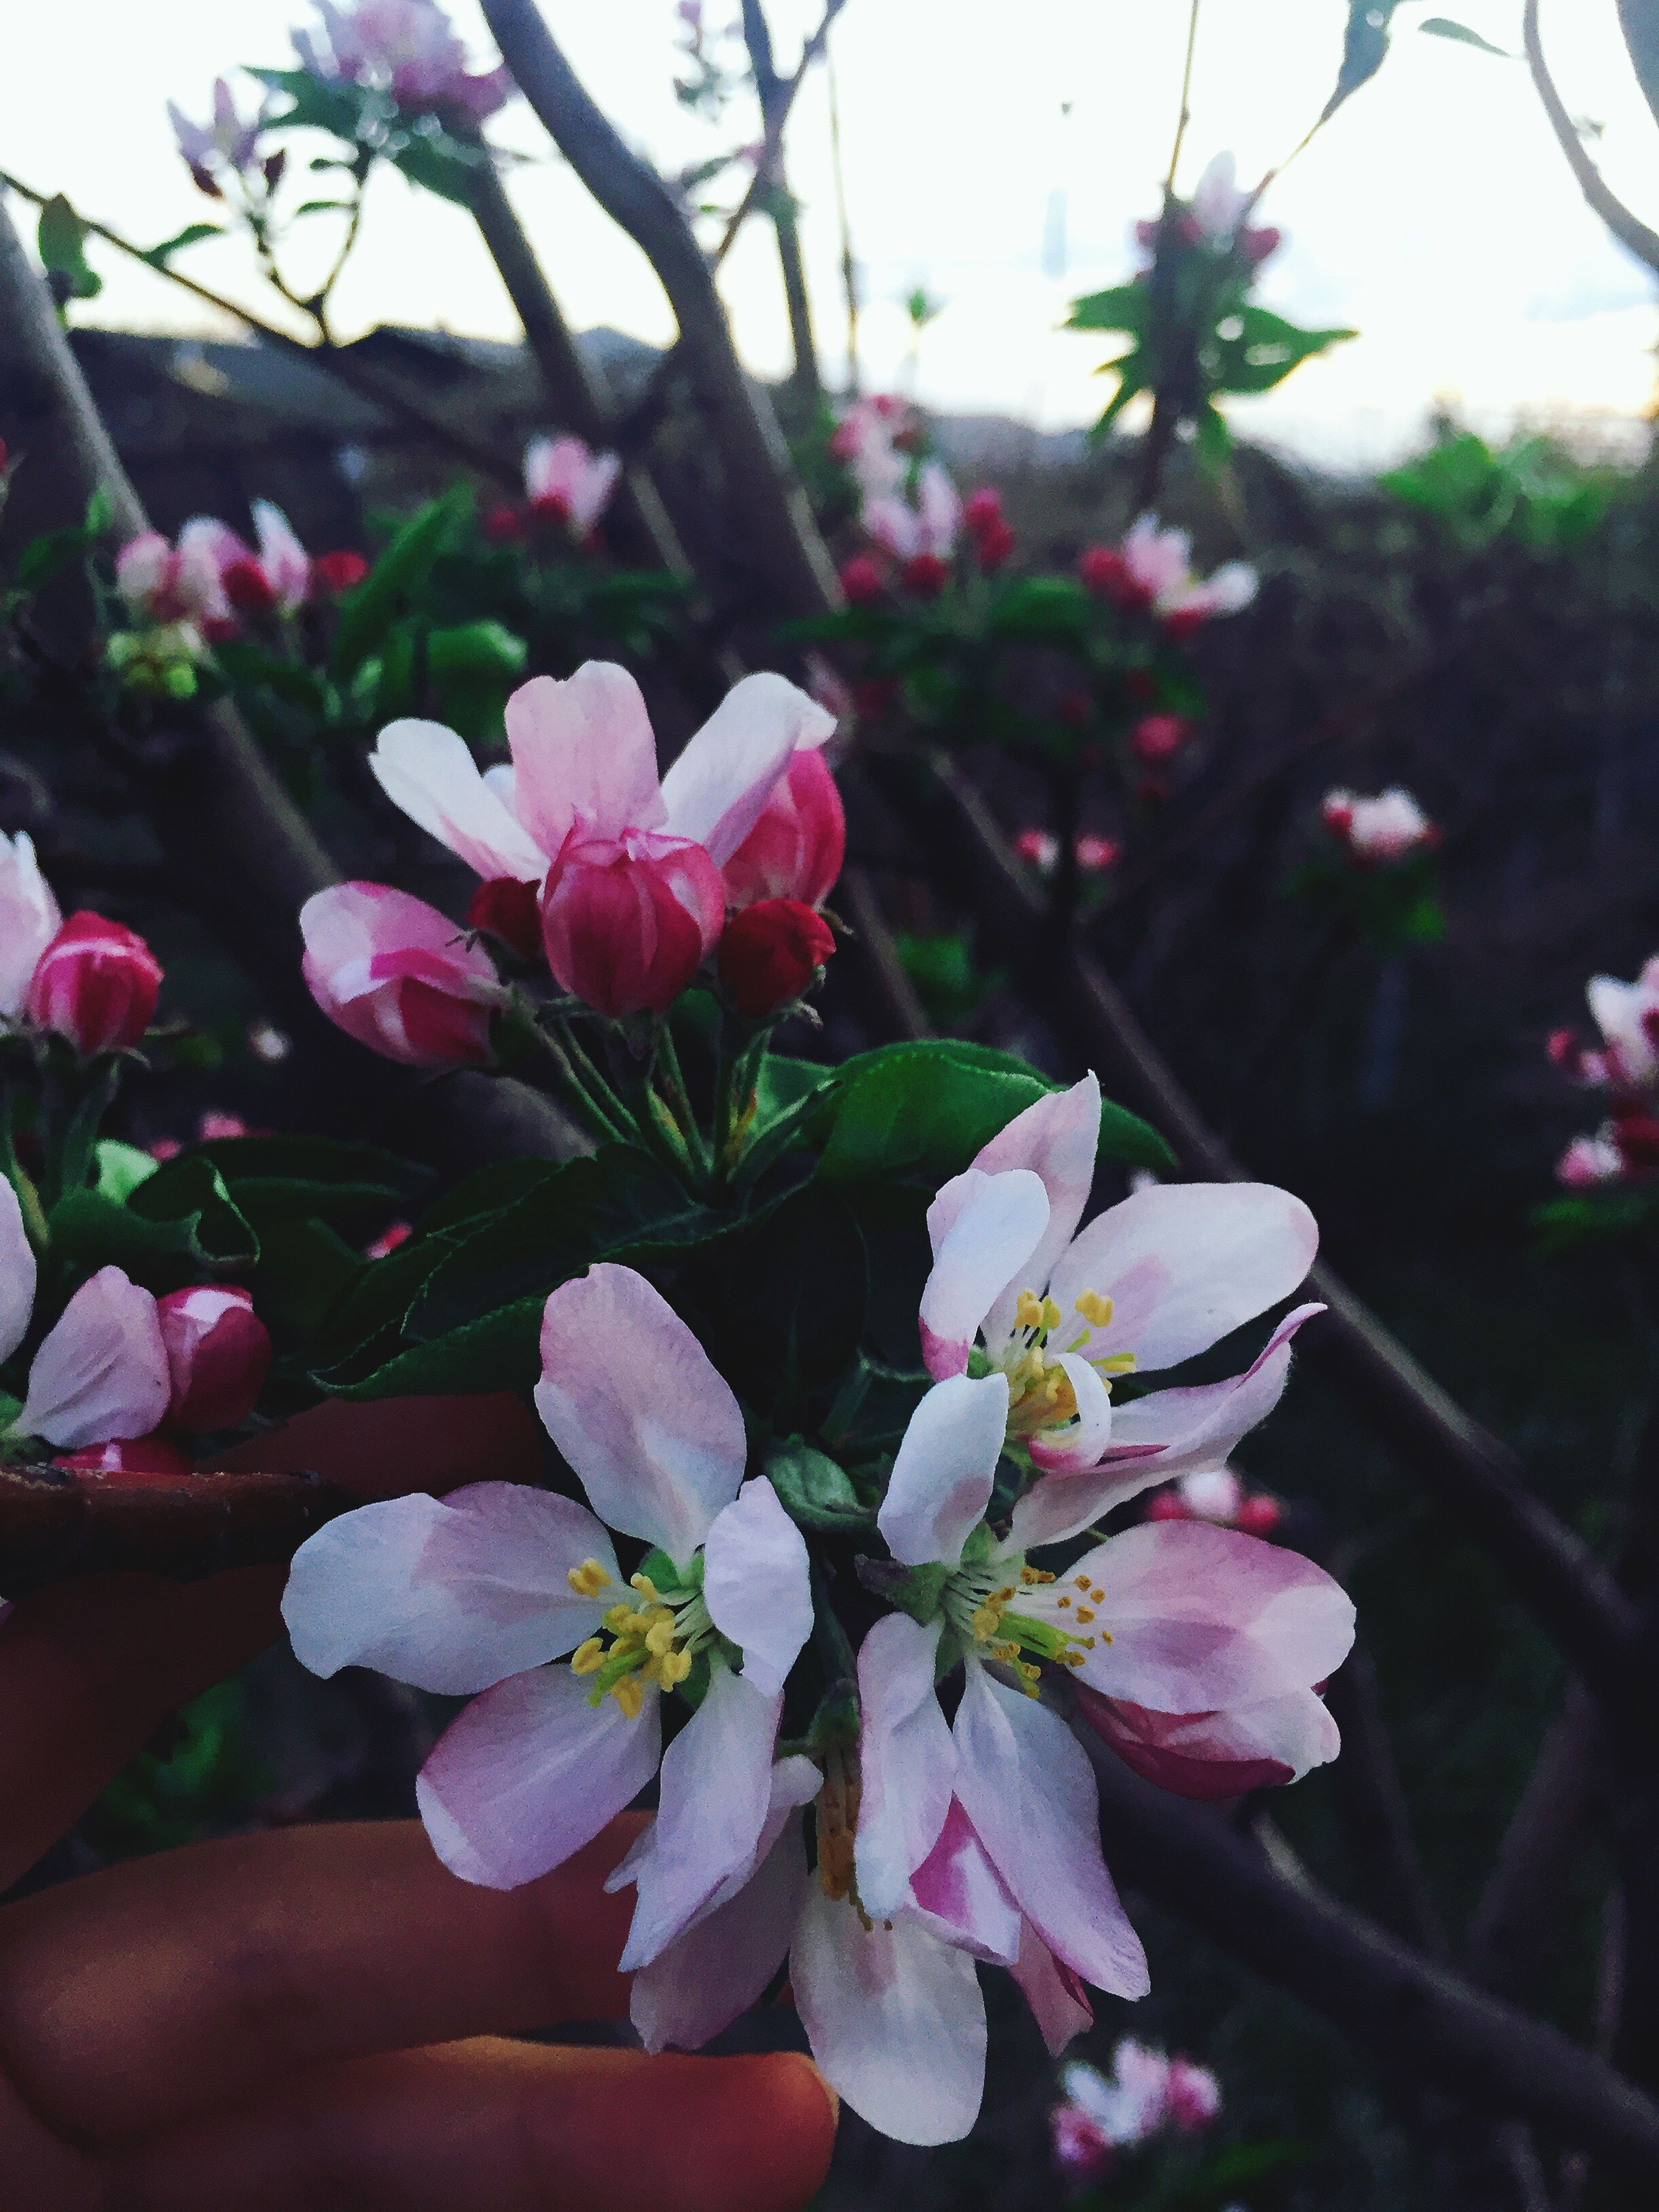 flower, freshness, growth, fragility, nature, beauty in nature, pink color, petal, close-up, flower head, no people, focus on foreground, blooming, springtime, plant, outdoors, day, rhododendron, tree, plum blossom